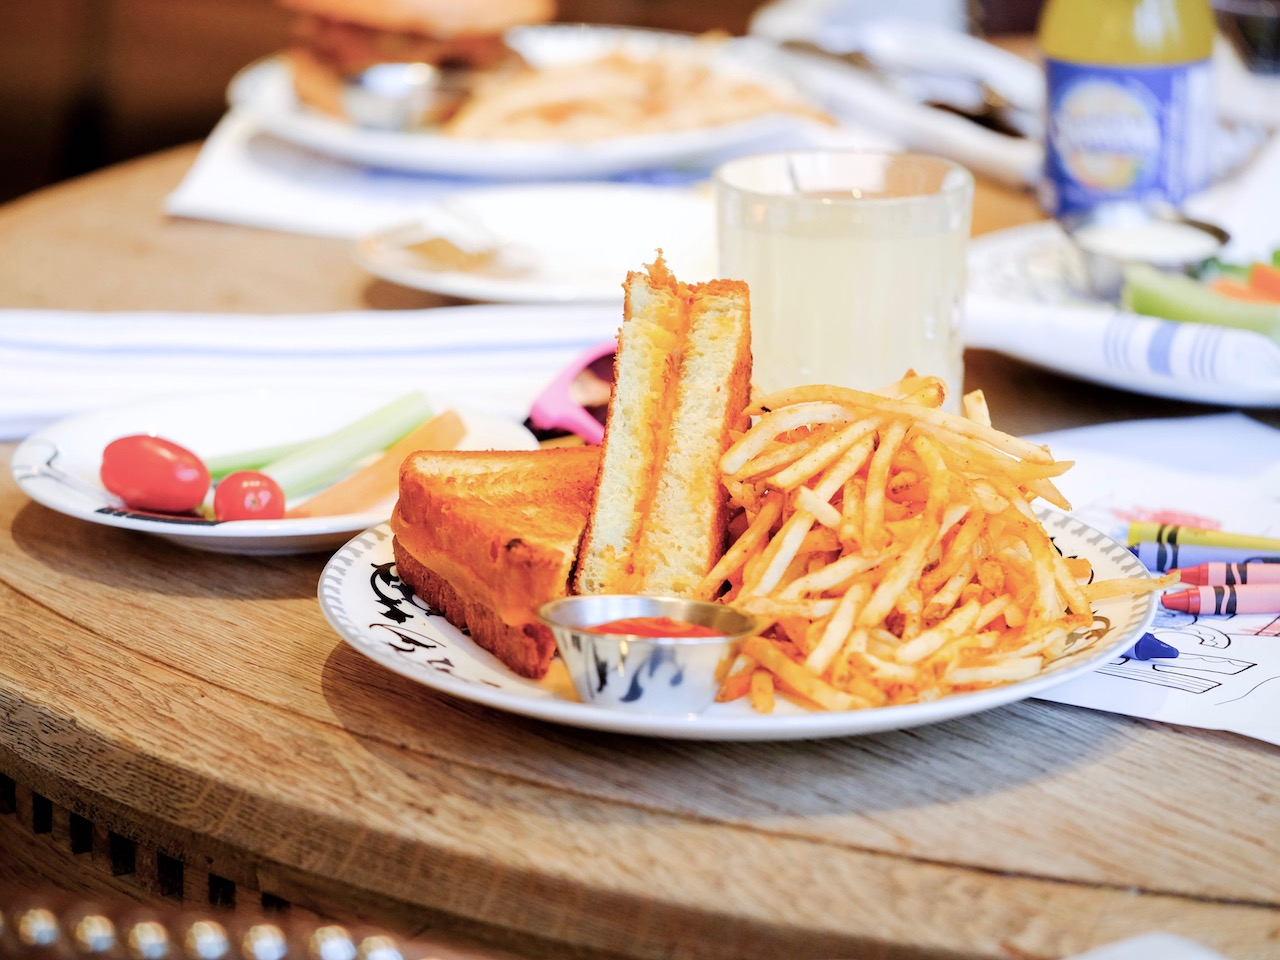 plate of food with sandwich and French fries